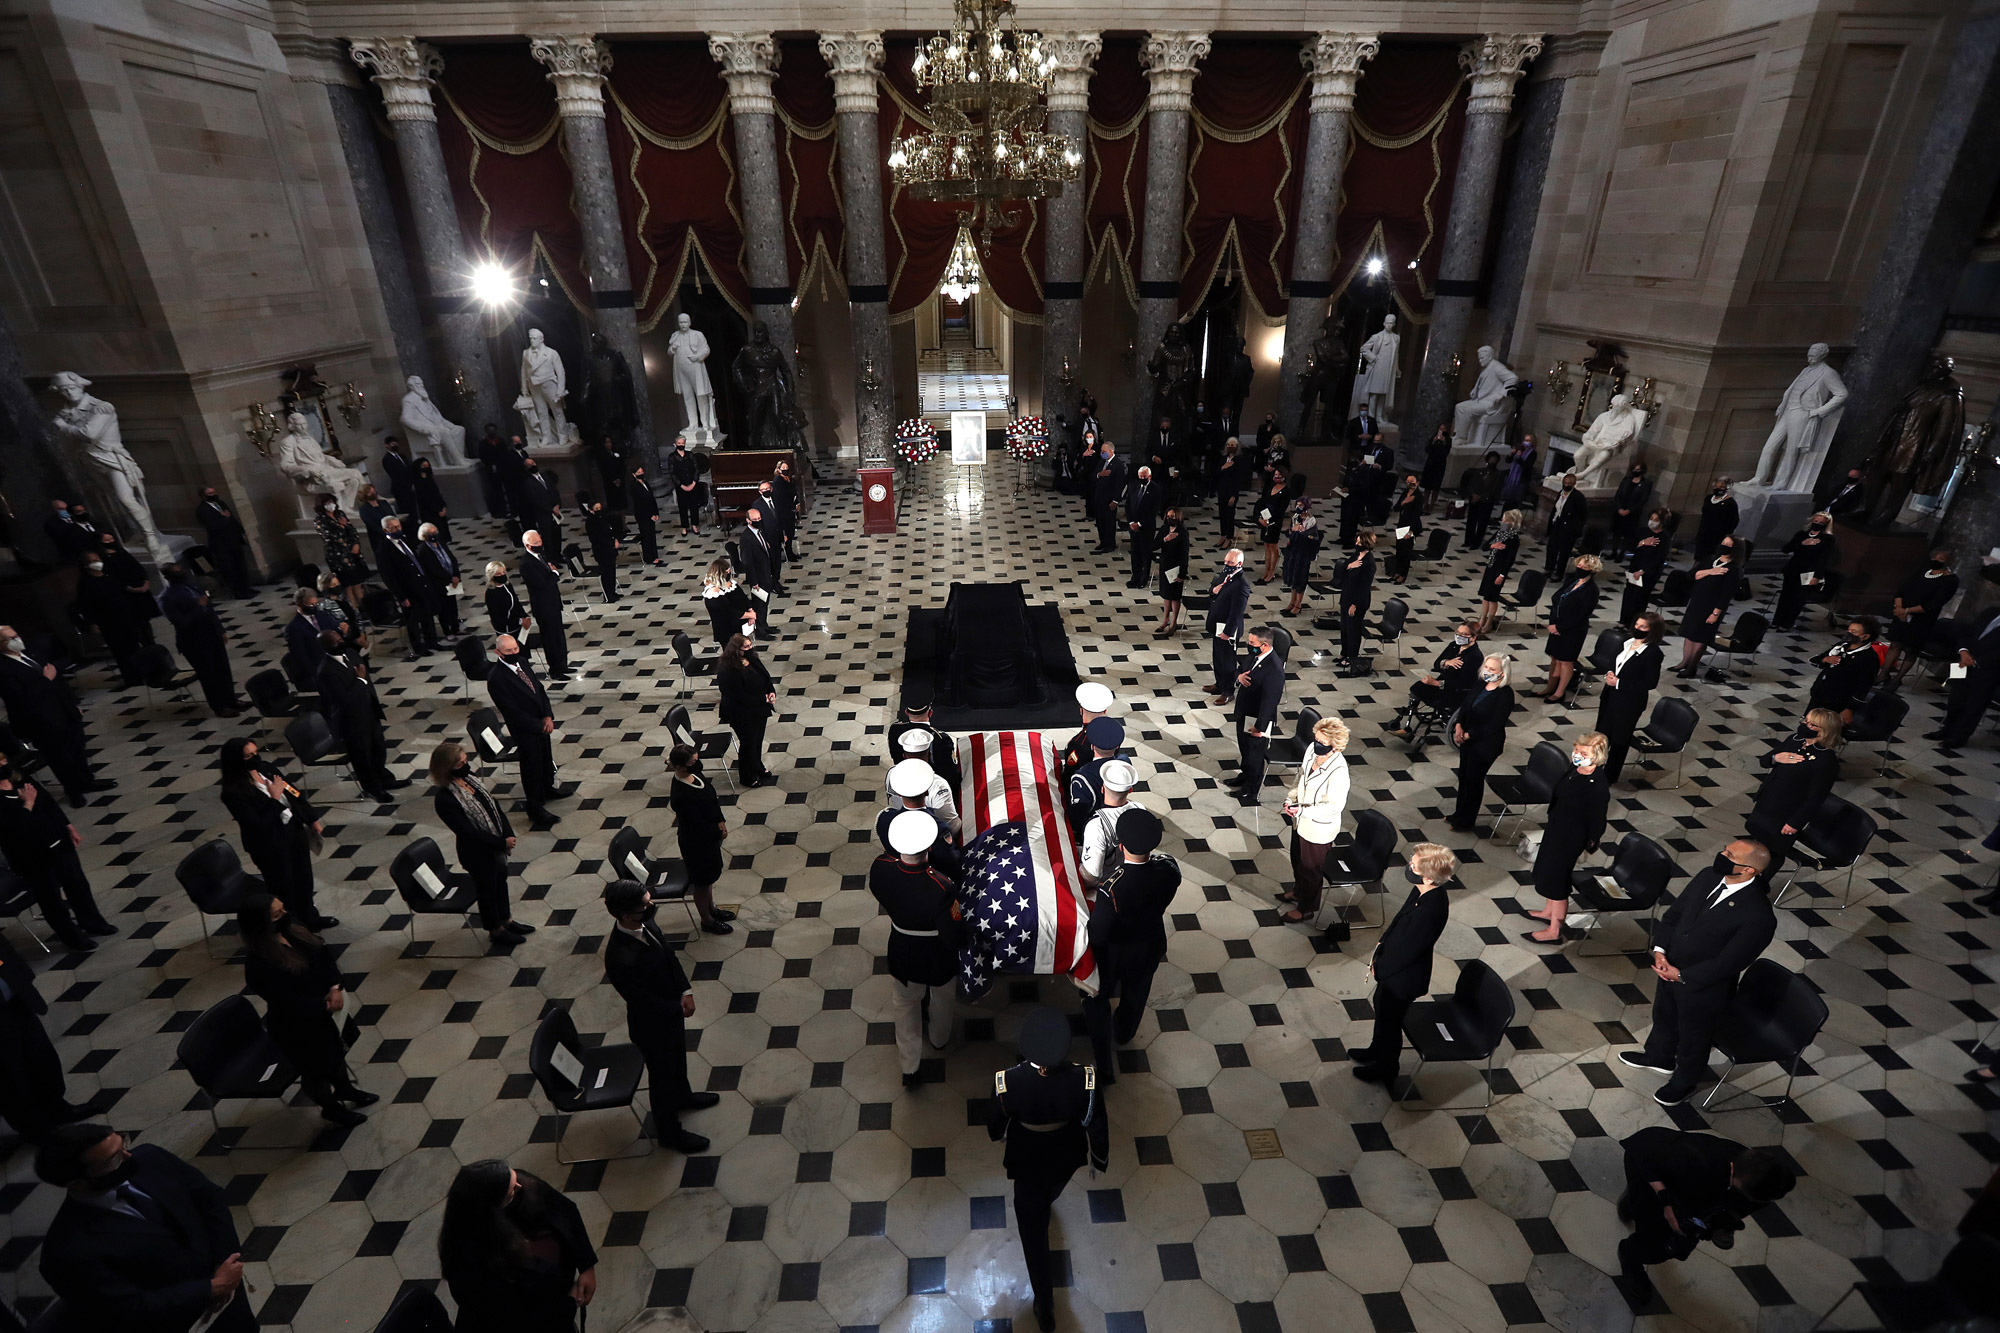 U.S. Supreme Court Associate Justice Ruth Bader Ginsburg's flag-draped casket is carried into Statuary Hall where she will lie in state at the U.S. Capitol on September 25 in Washington, DC.